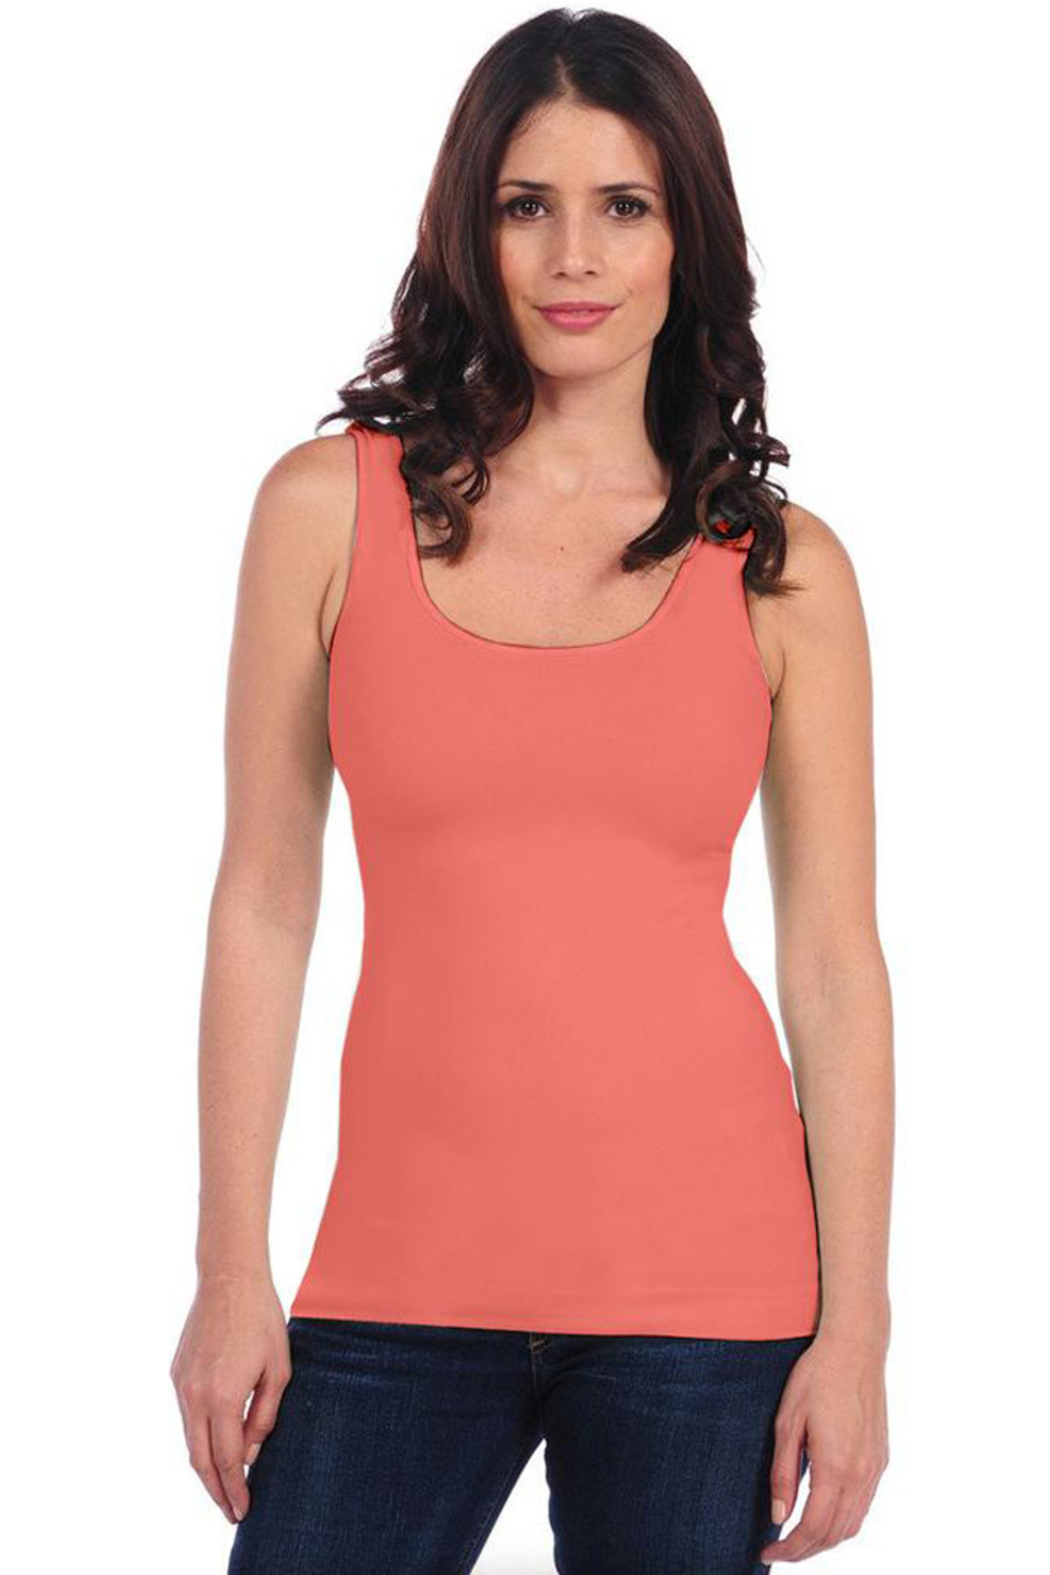 Tees by Tina BASIC SMOOTH TANK - Front Cropped Image